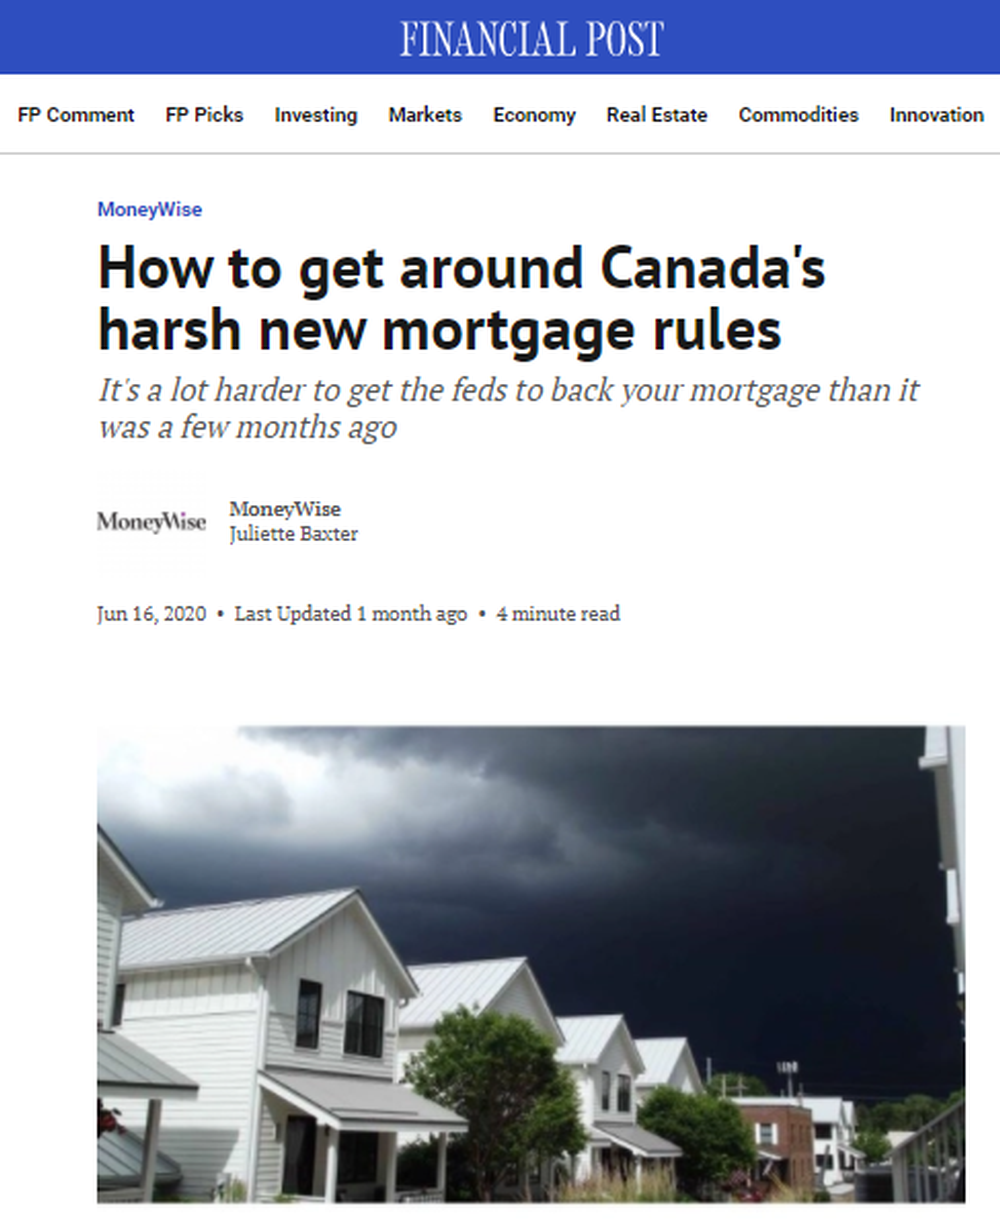 How-to-get-around-Canada-s-harsh-new-mortgage-rules-Financial-Post (1).png